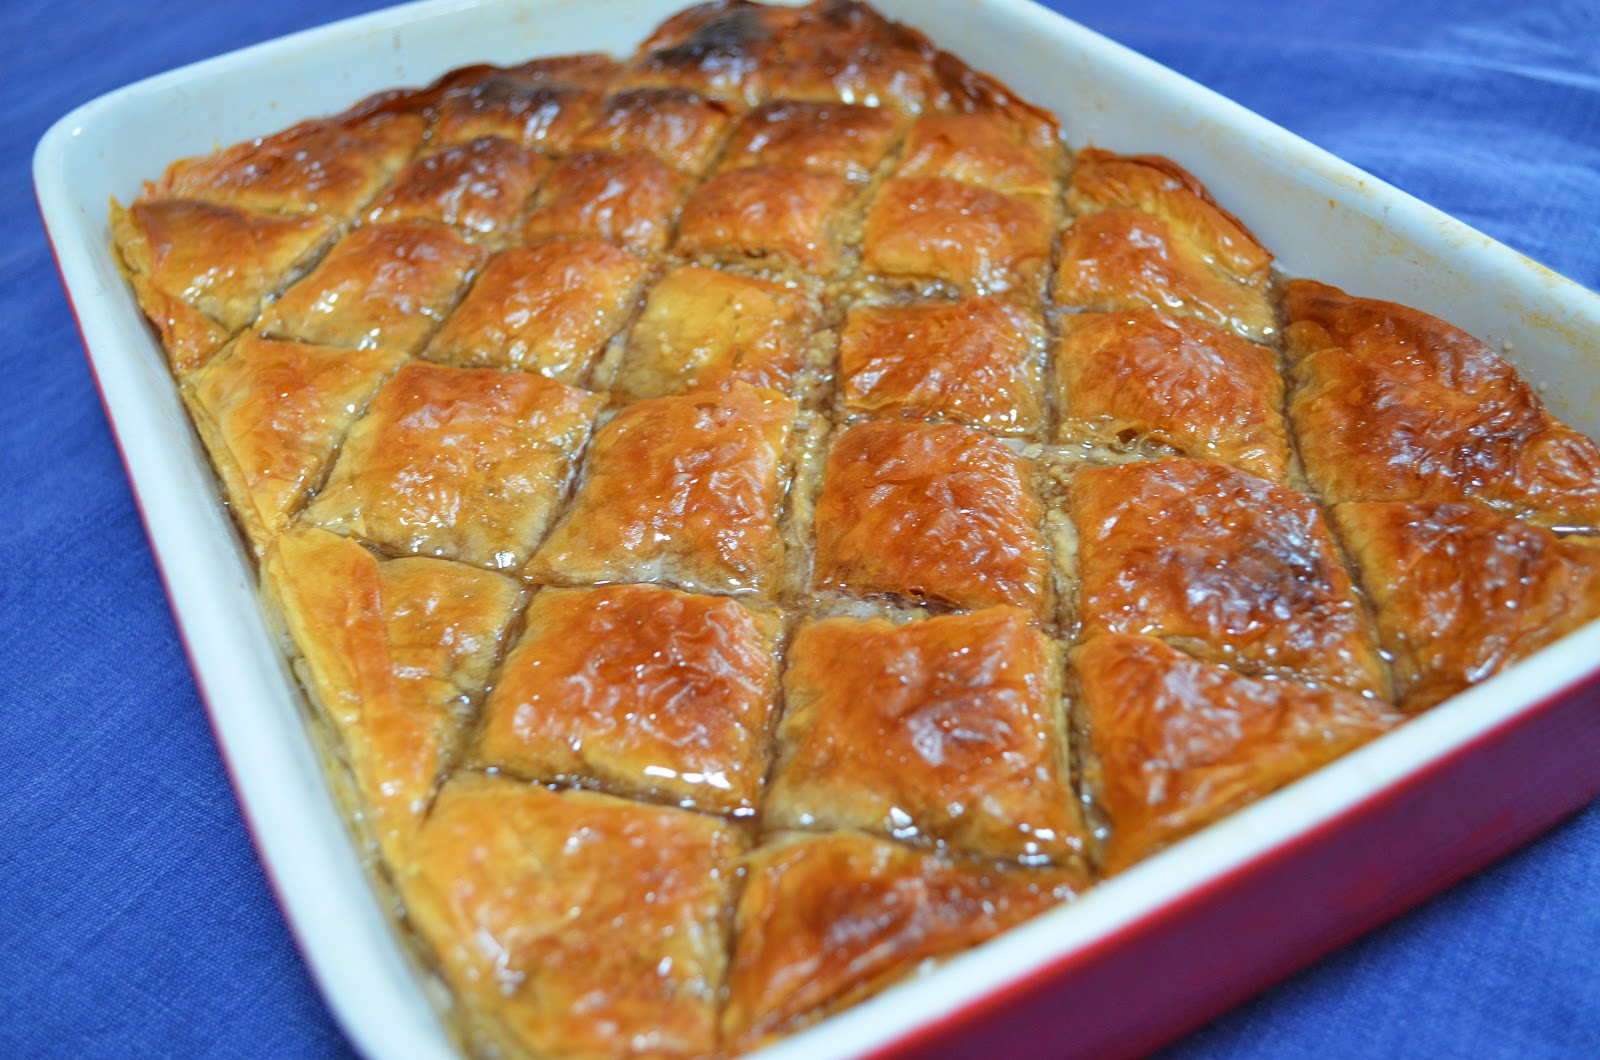 Gormandize bosnian walnut baklava tuesday 27 march 2012 forumfinder